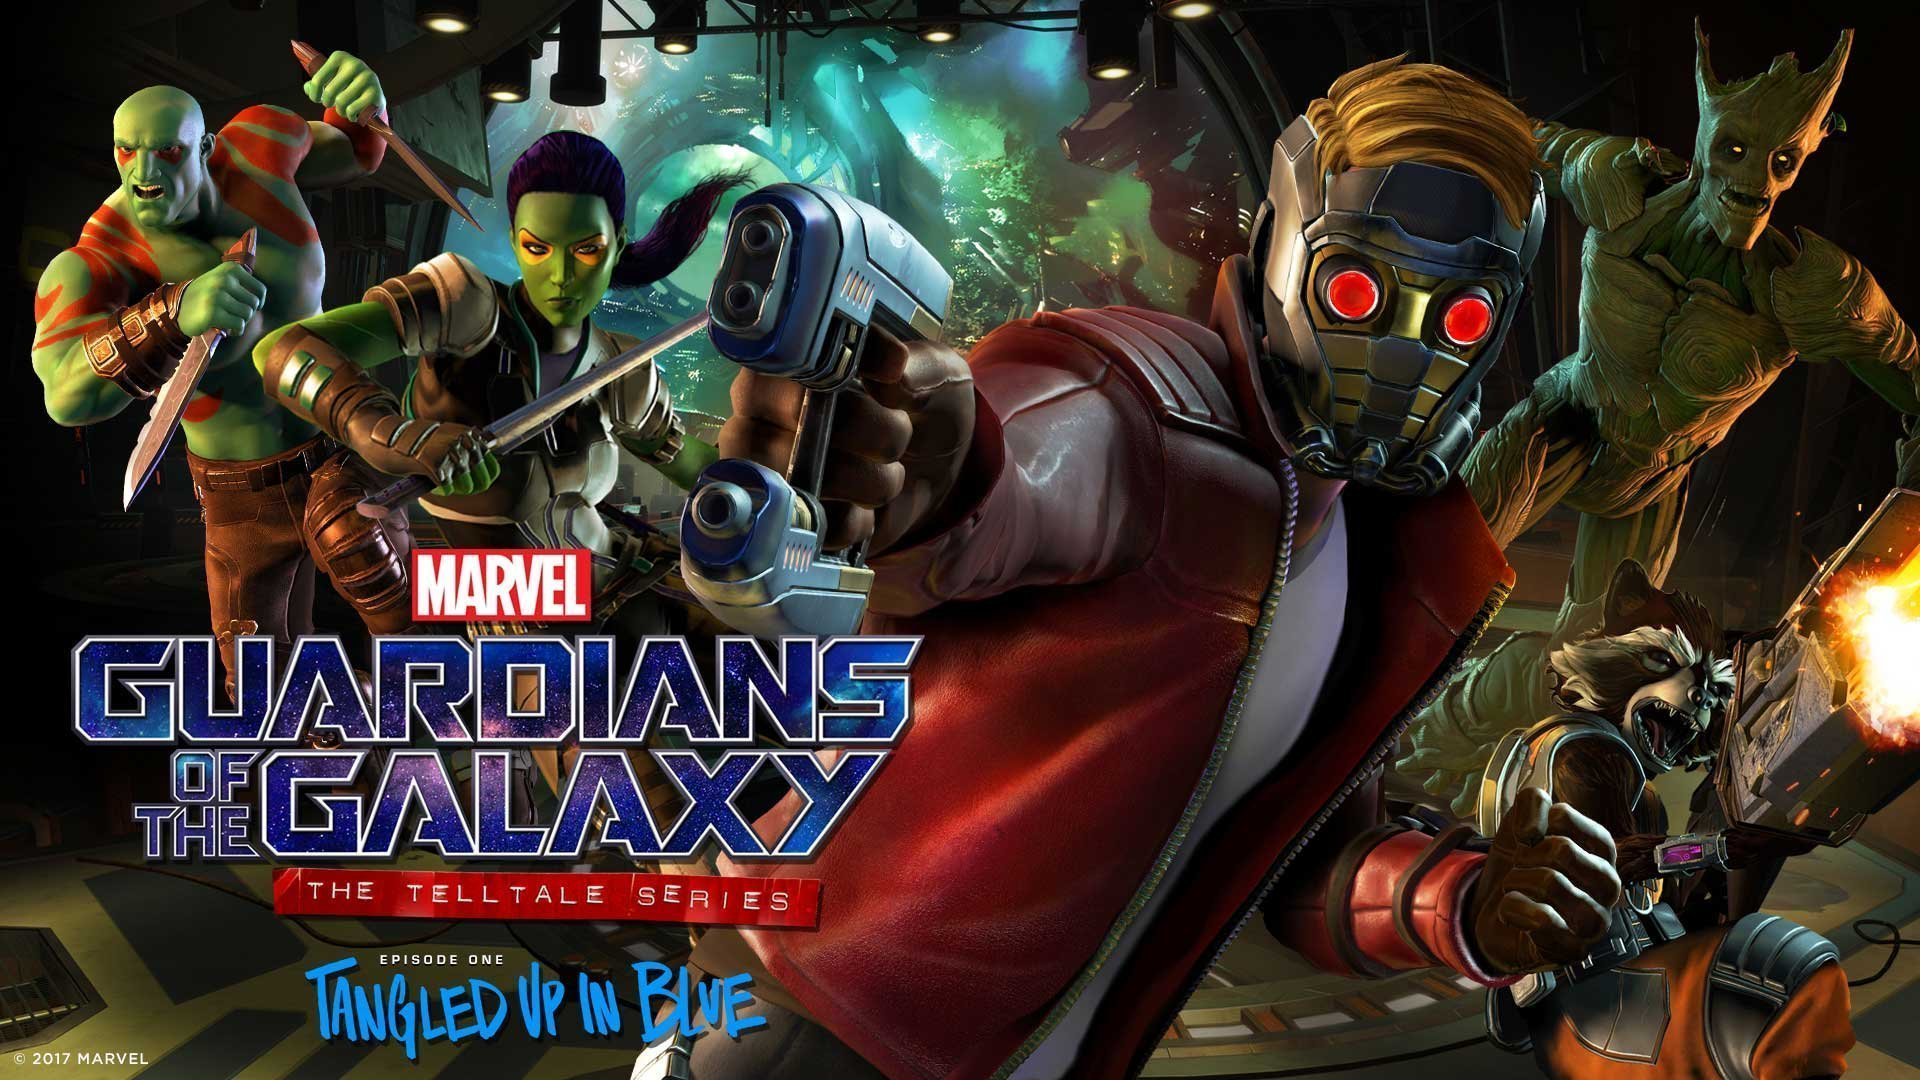 Image du premier épisode de Guardians of the Galaxy: The Telltale Series